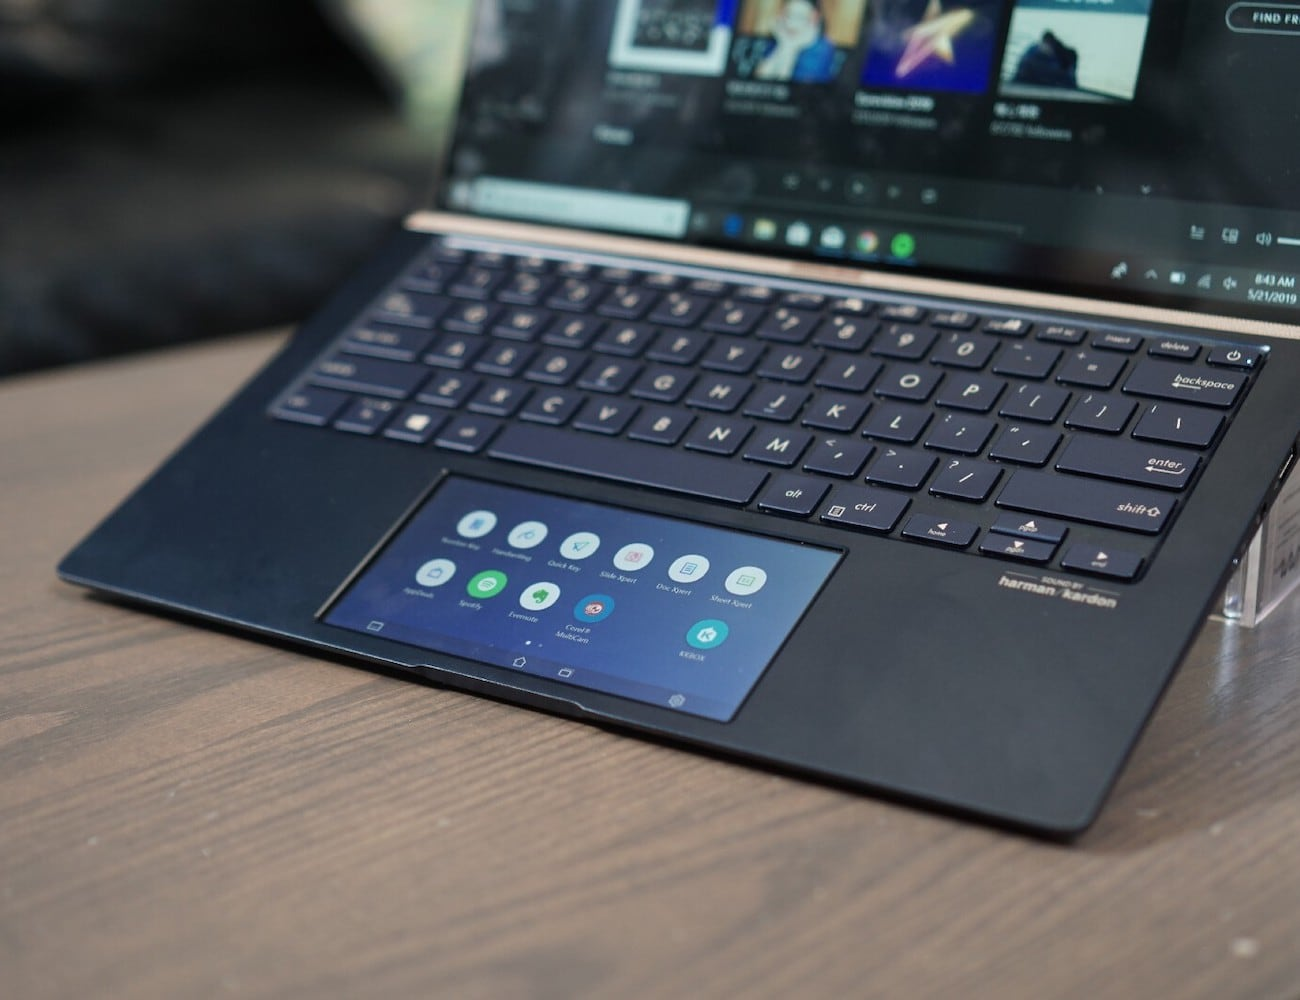 The best new tech revealed at Computex 2019 - Asus ScreenPad 2.0 2